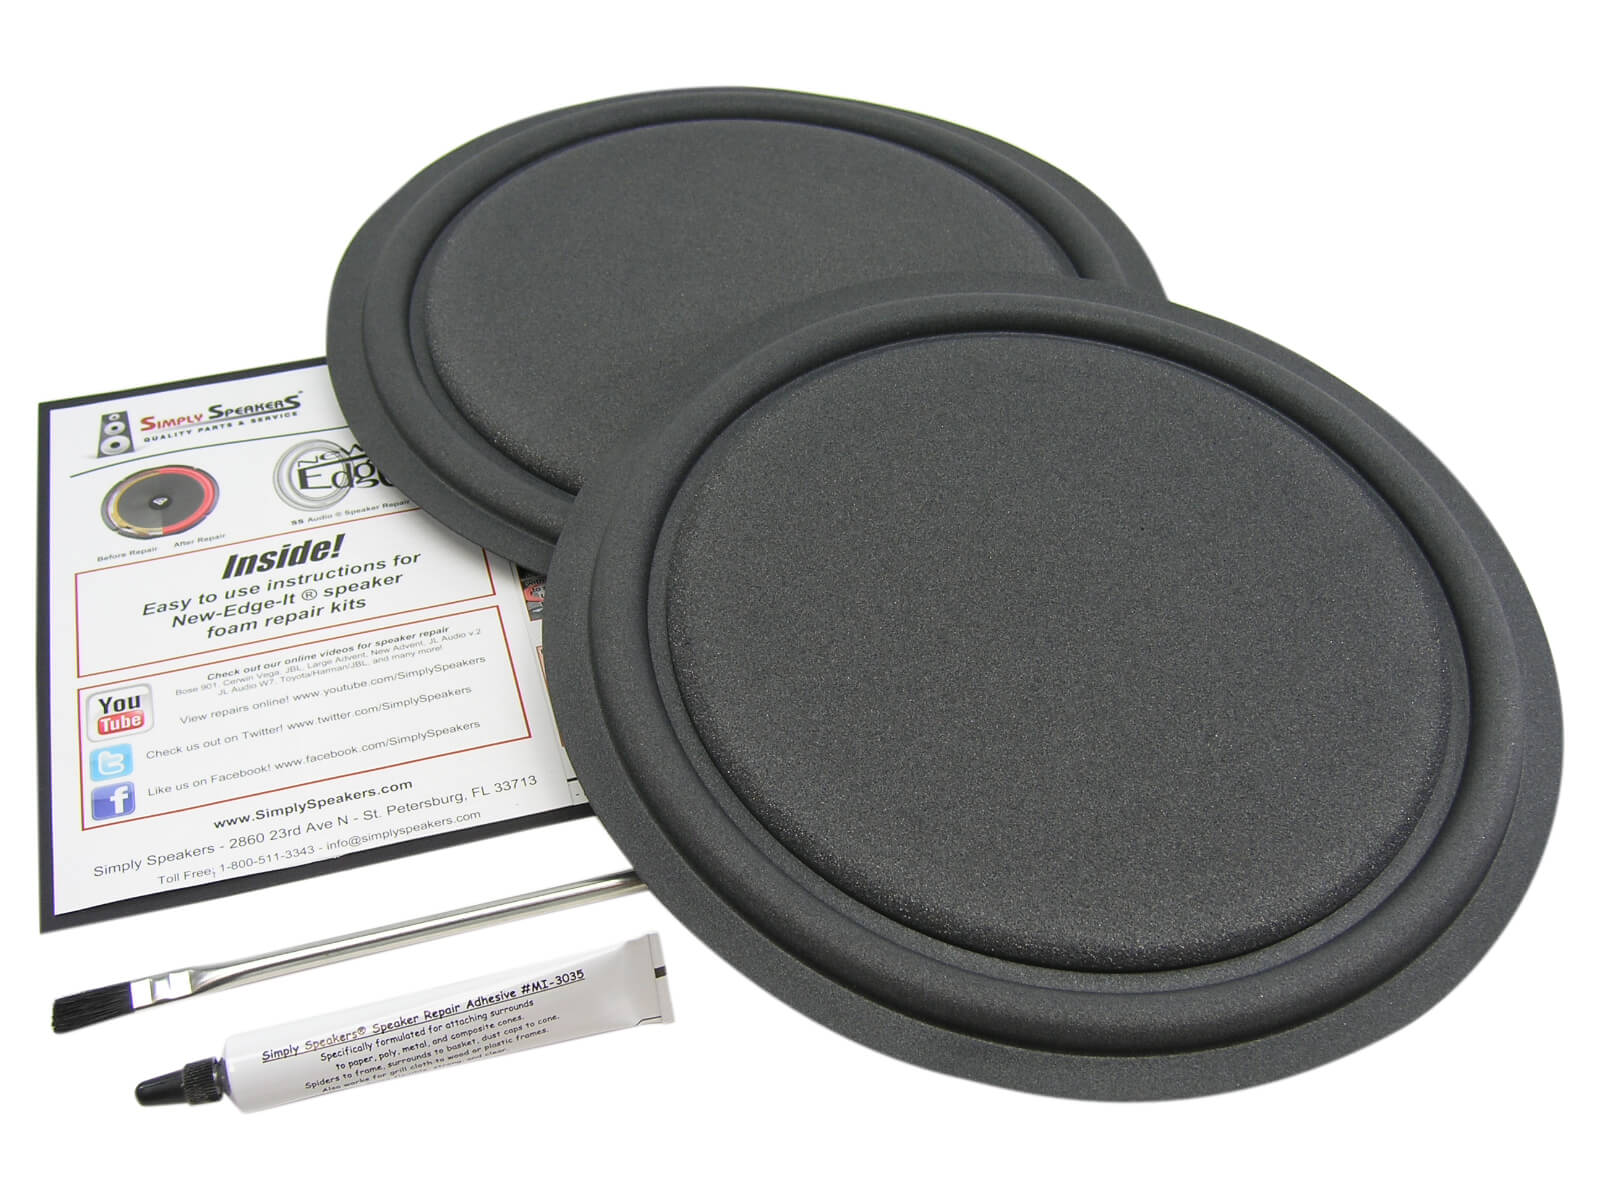 Speaker Passive Radiator Repair Kit